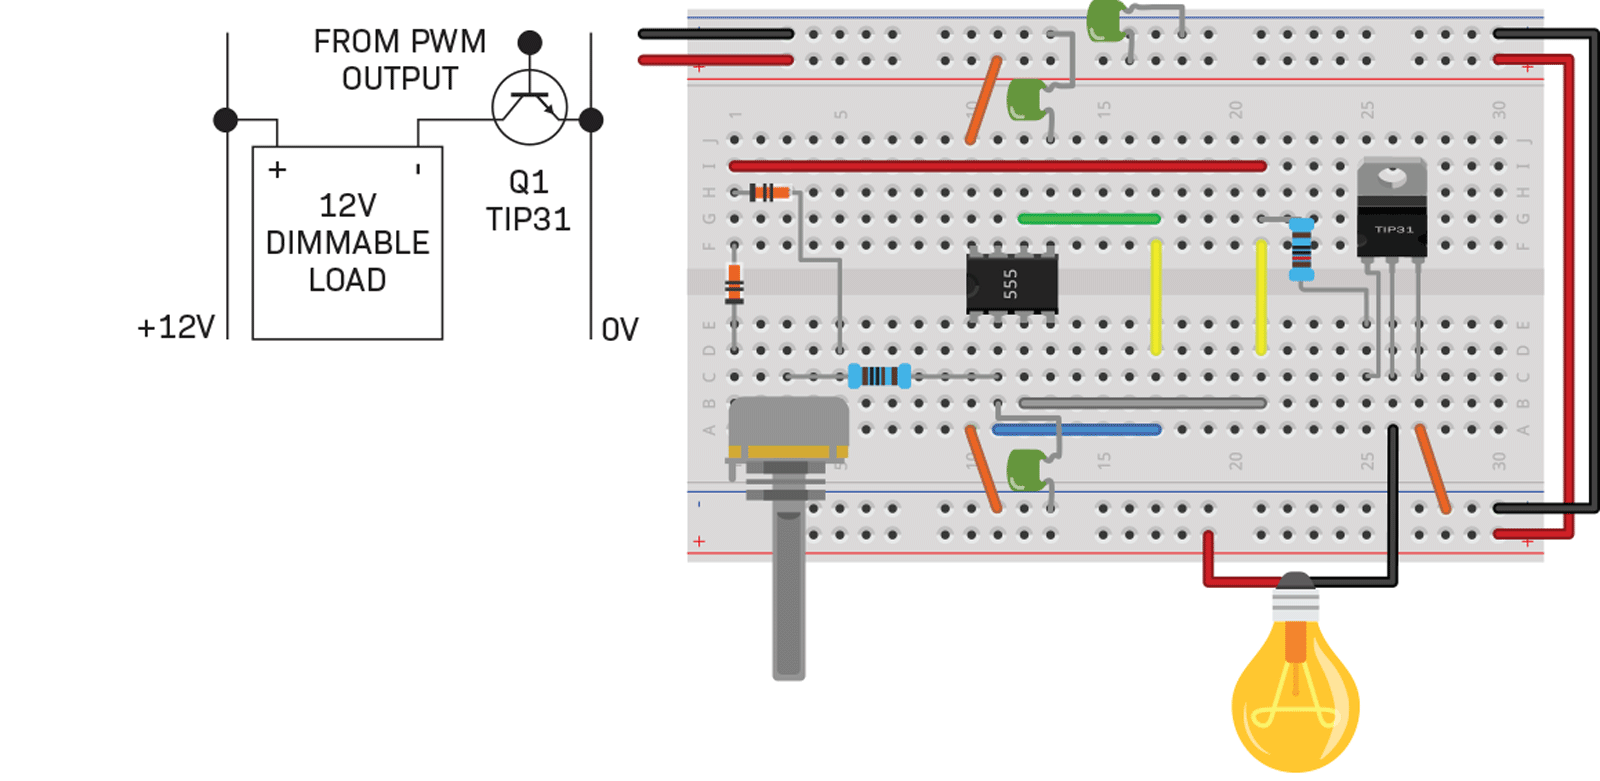 Versatile 555 Timer Pwm Control Diyode Magazine In The Astable Operation Mode Circuit Triggers Schematic Transistor1